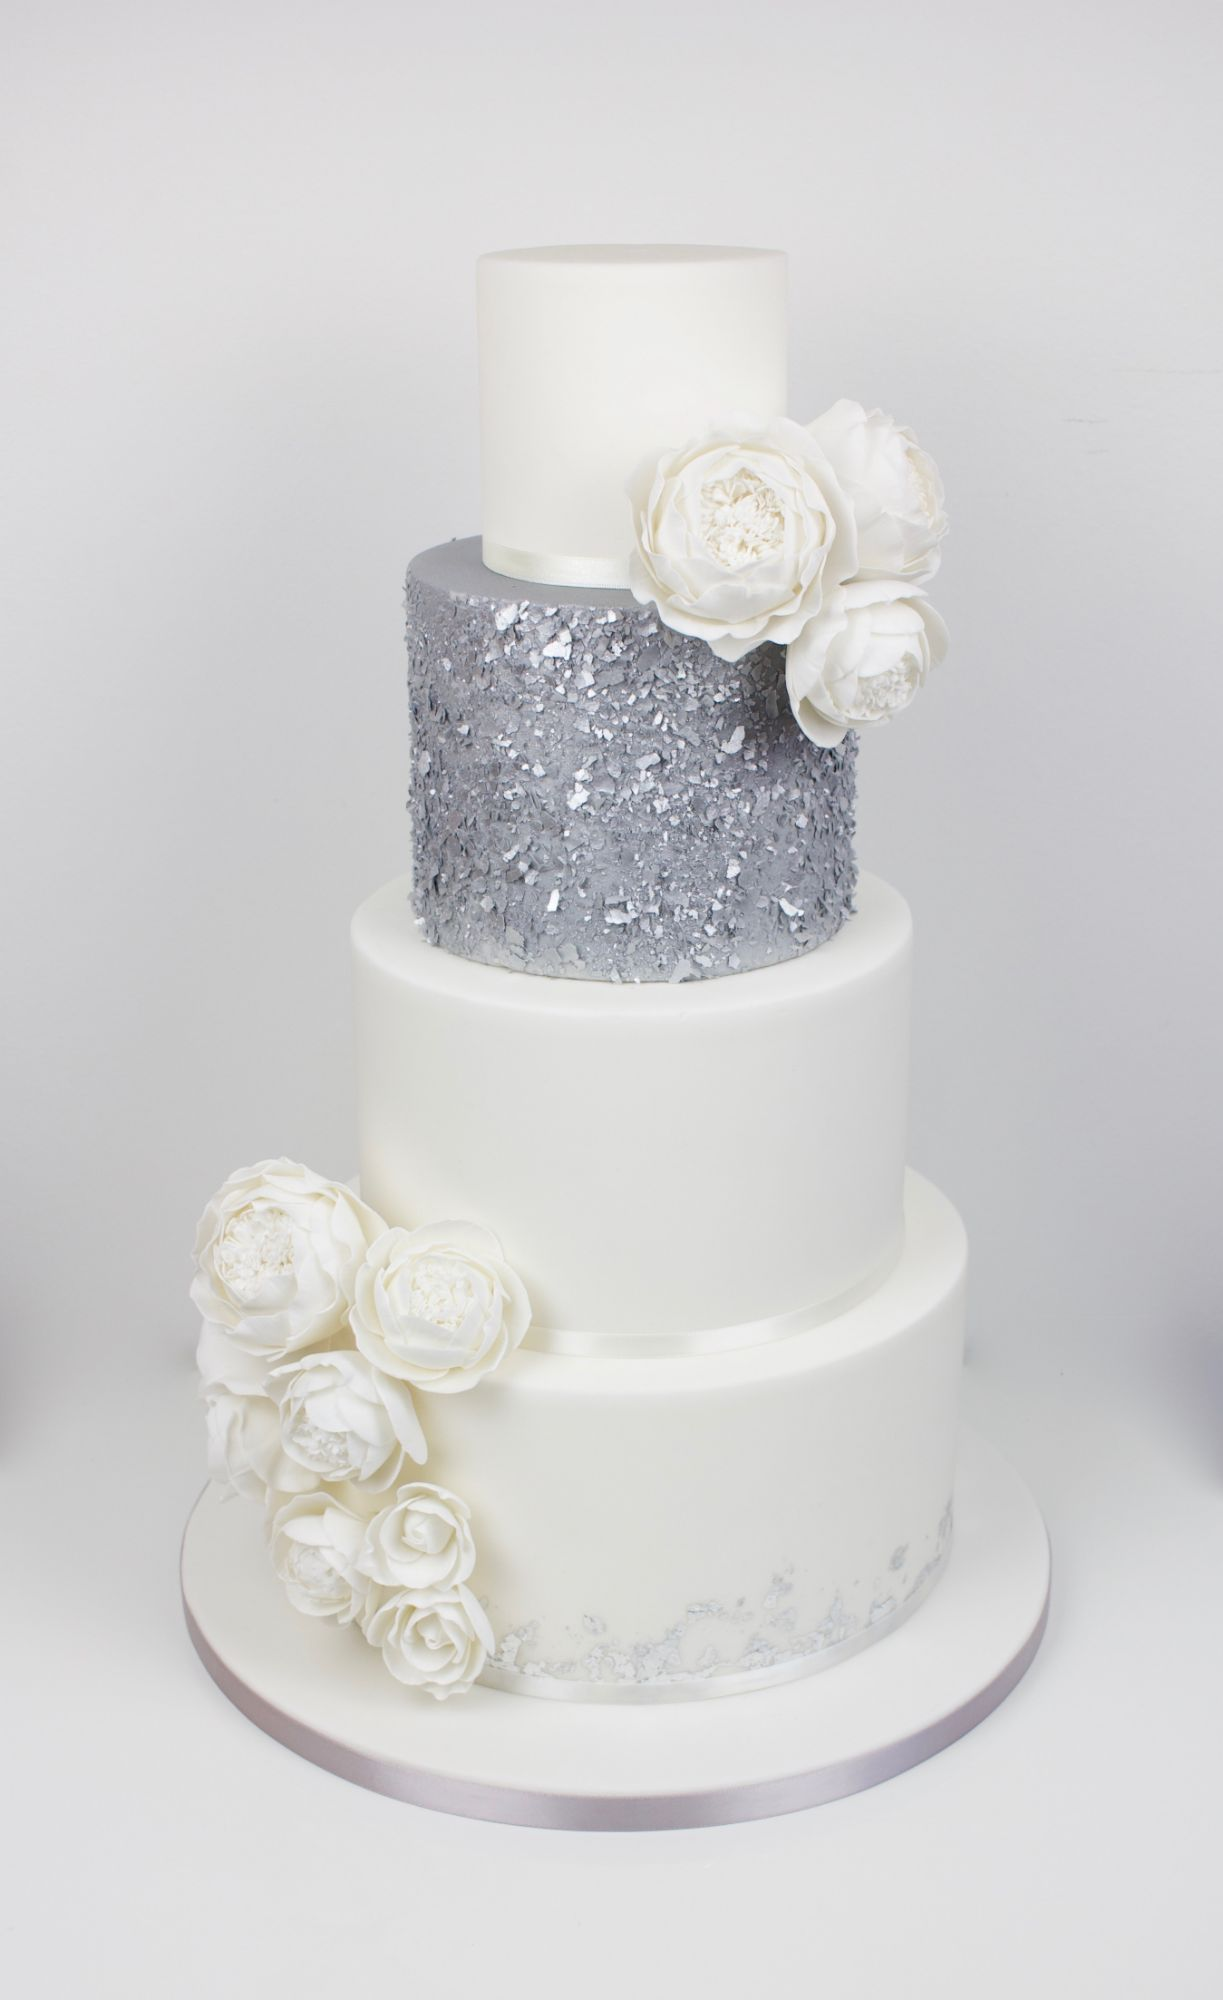 Silver 4 tier wedding cake with white garden roses